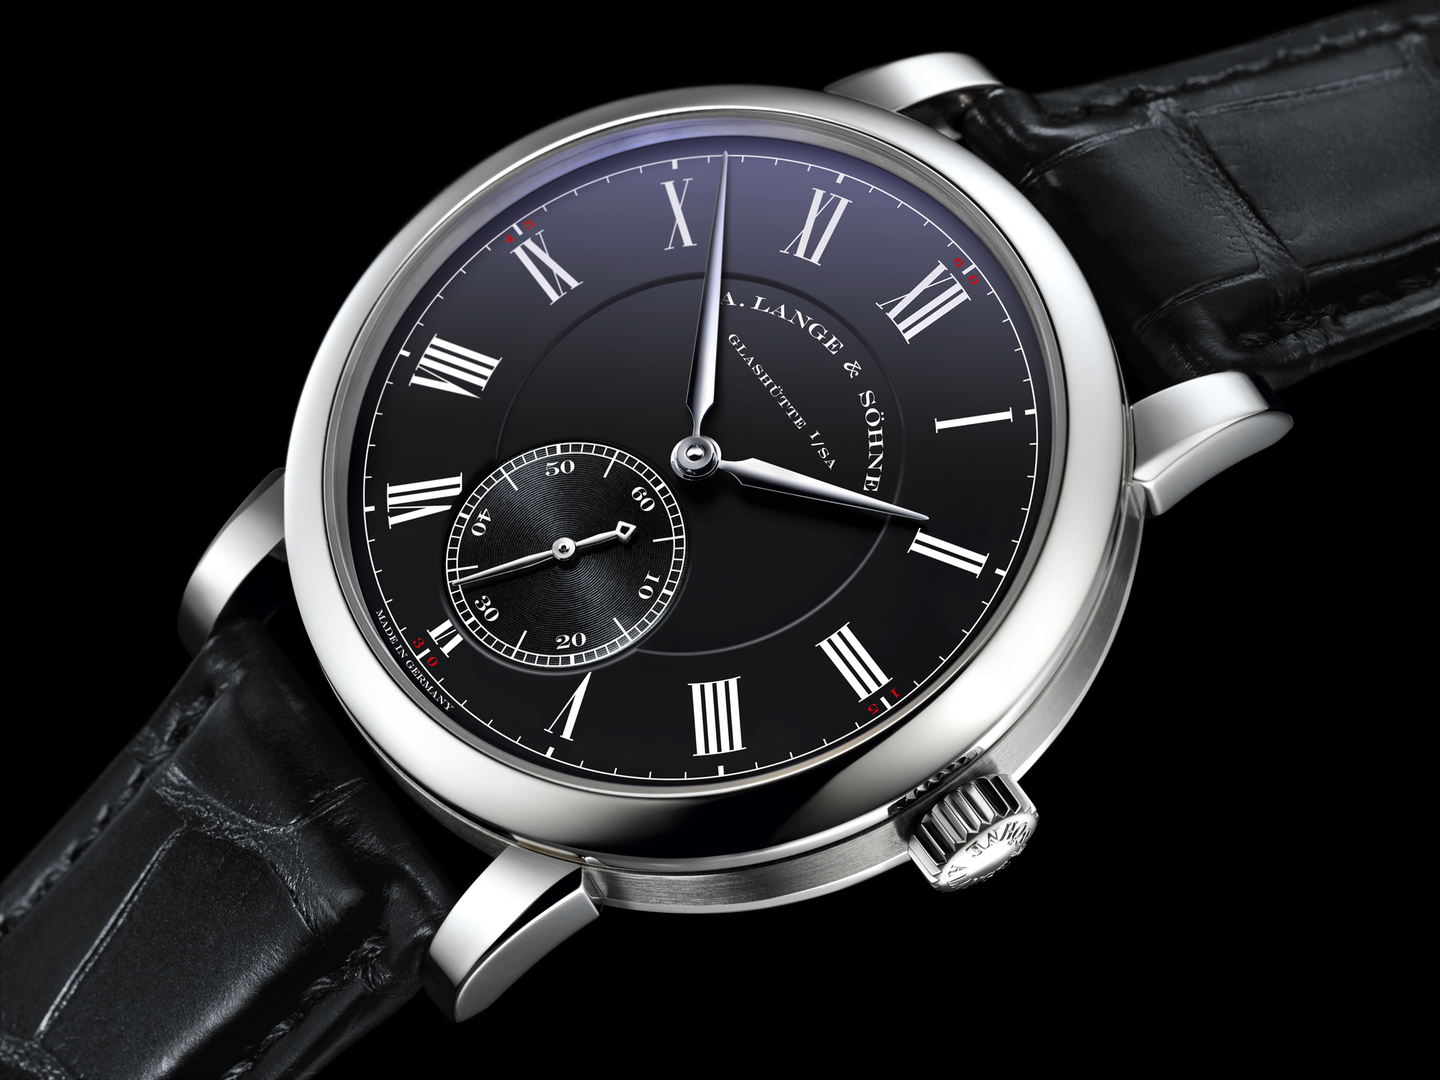 2016 watch recommended 9 german watch brands luxury watches brands wholesale in swiss for Luxury watches